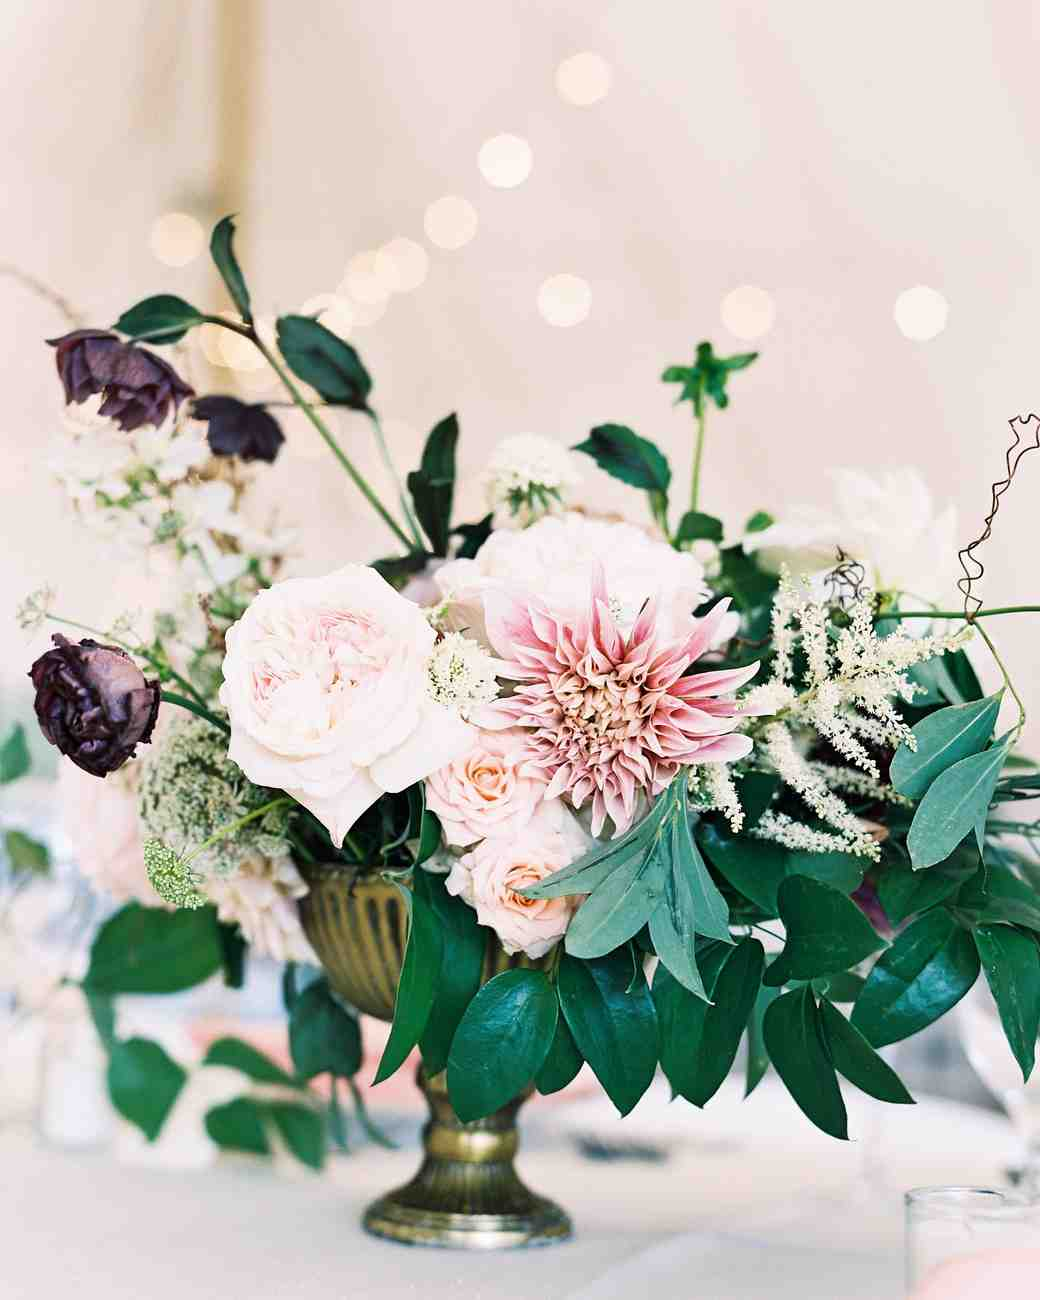 Vintage dahlia and rose summer wedding centerpiece